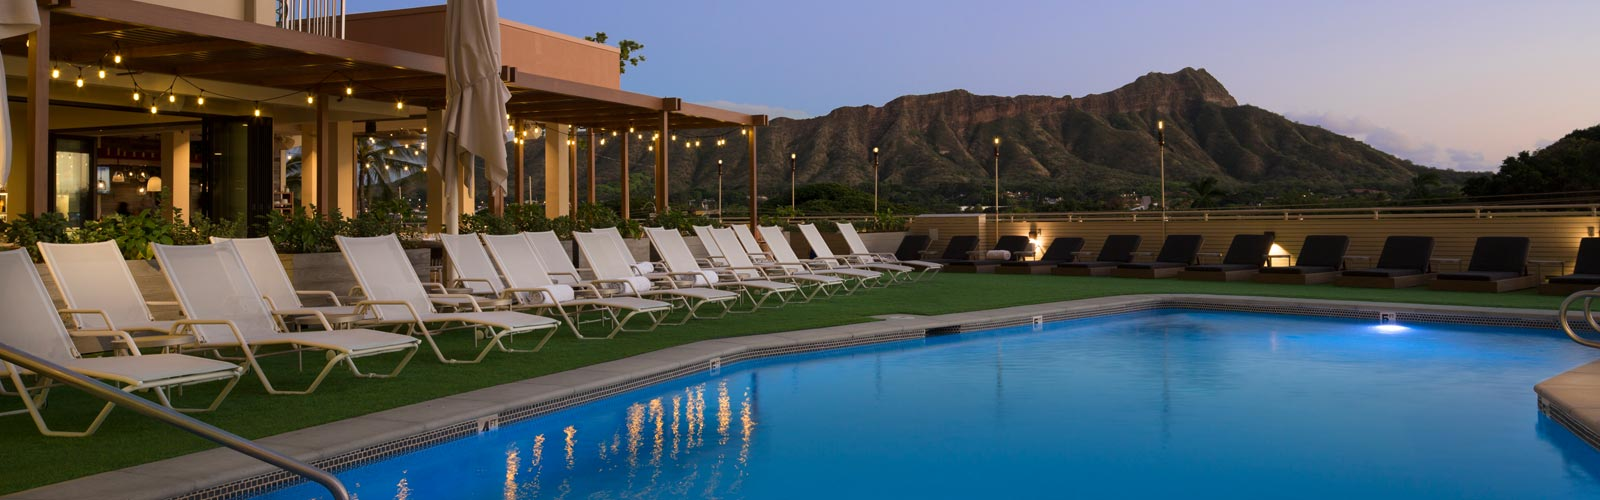 pool at dusk with mountains in background